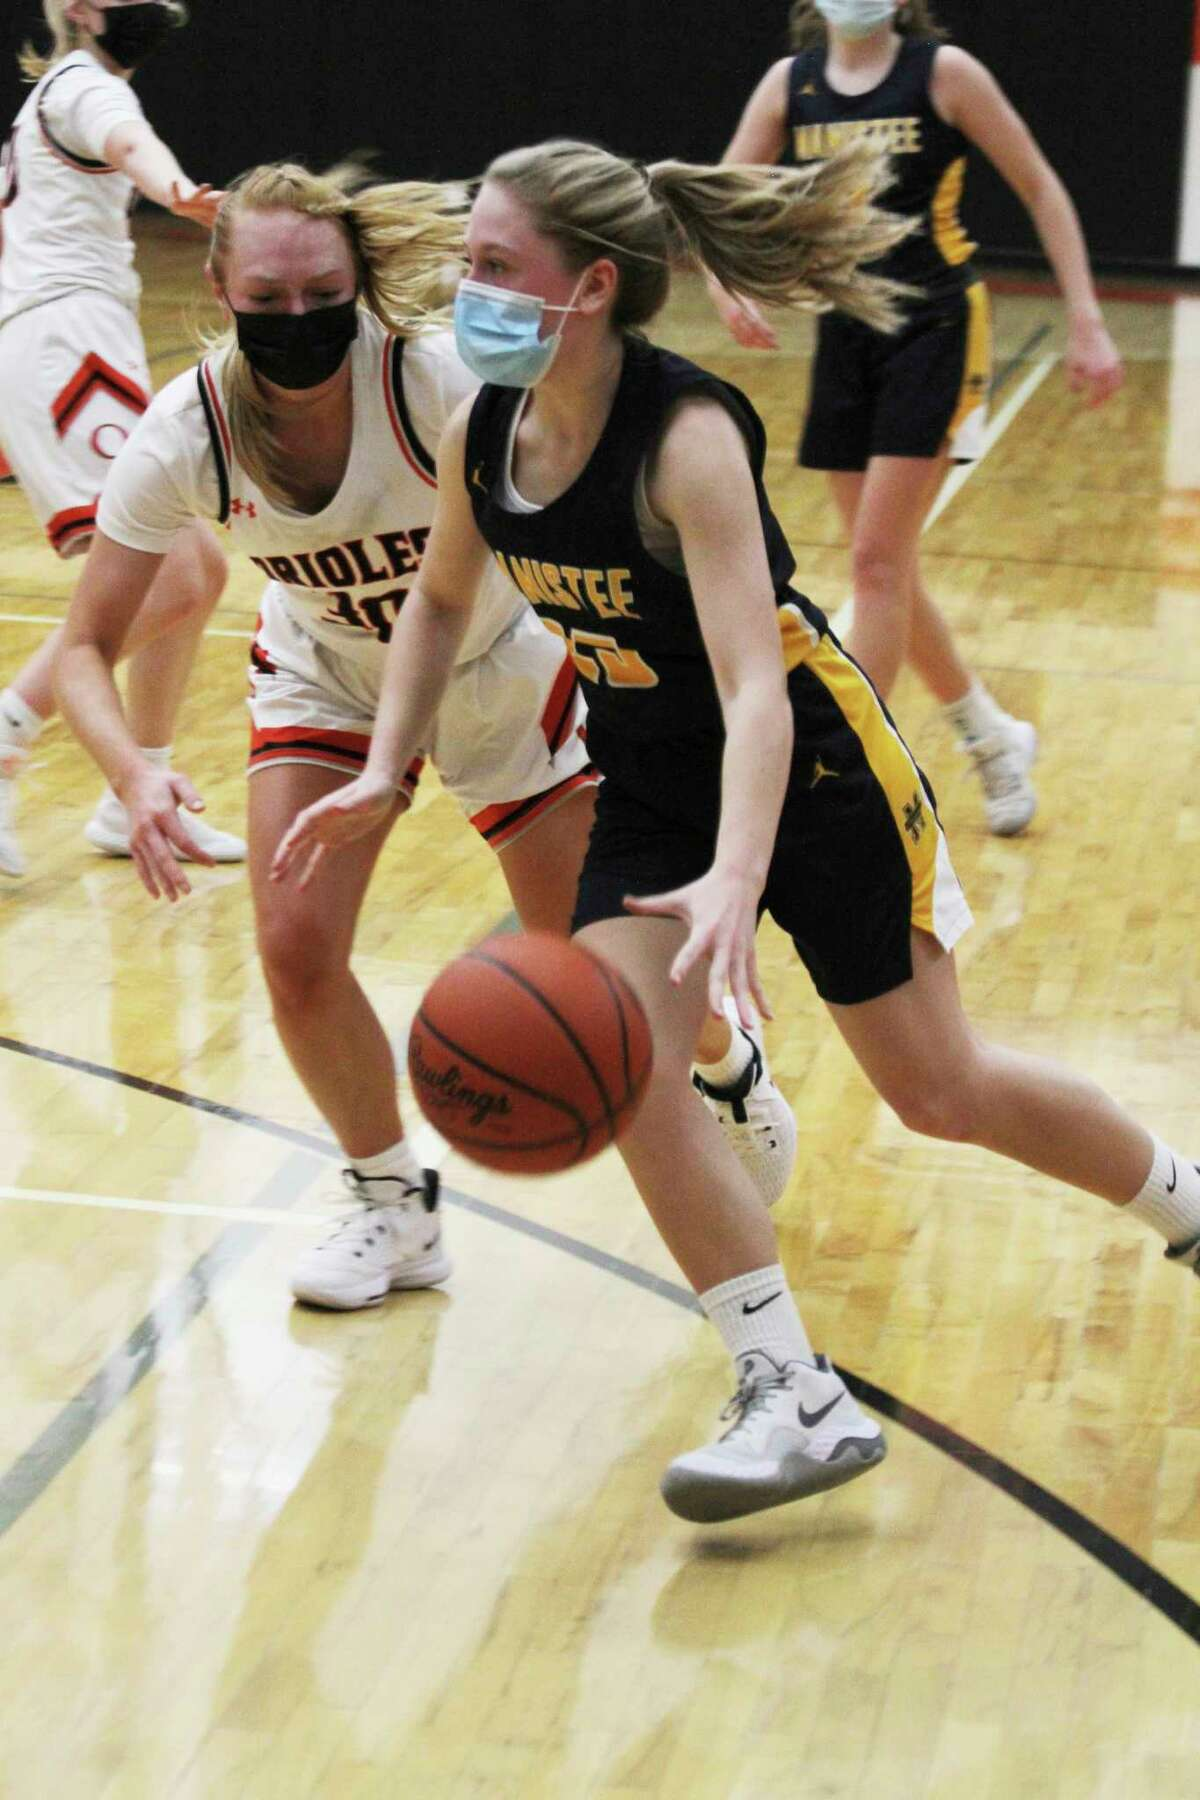 Manistee's Lacey Zimmerman led the Chippewas with nine points Wednesday night in their district semifinal loss to Ludington in Kingsley. (Dylan Savela/News Advocate)